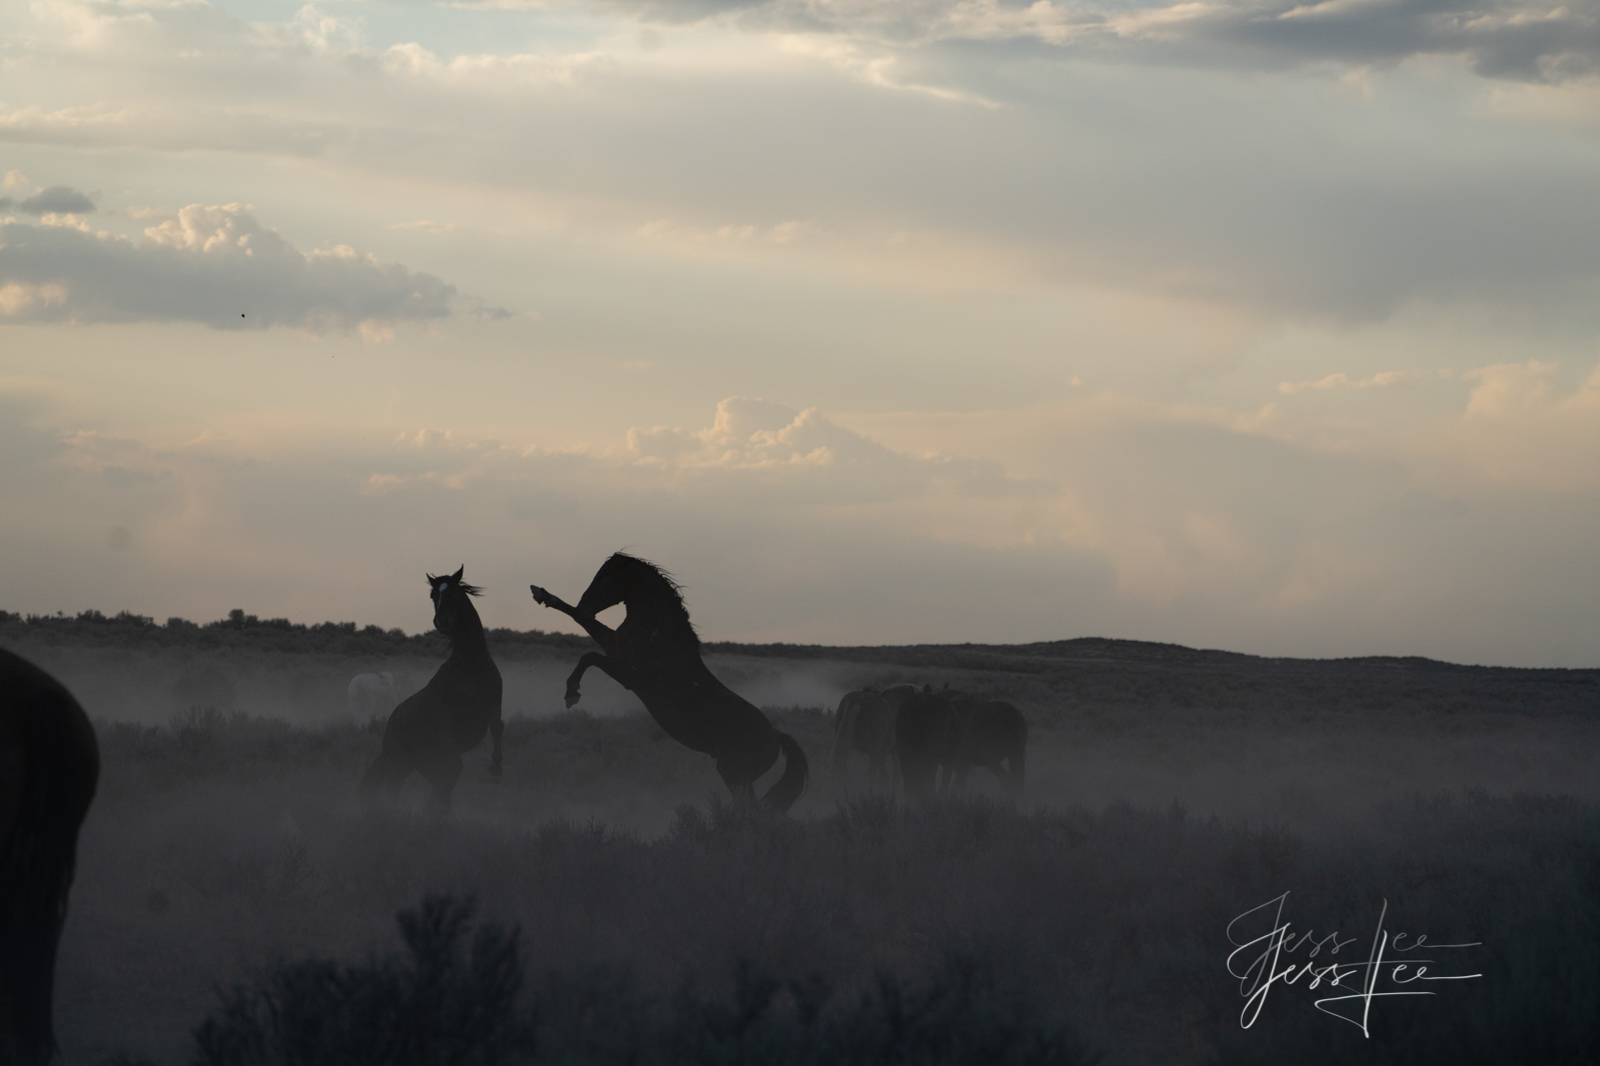 Fine Art Print of Wyoming Wild Horses. Sparing.  Limited Edition of 250 Luxurious Prints.  Choose the style, size, and medium...